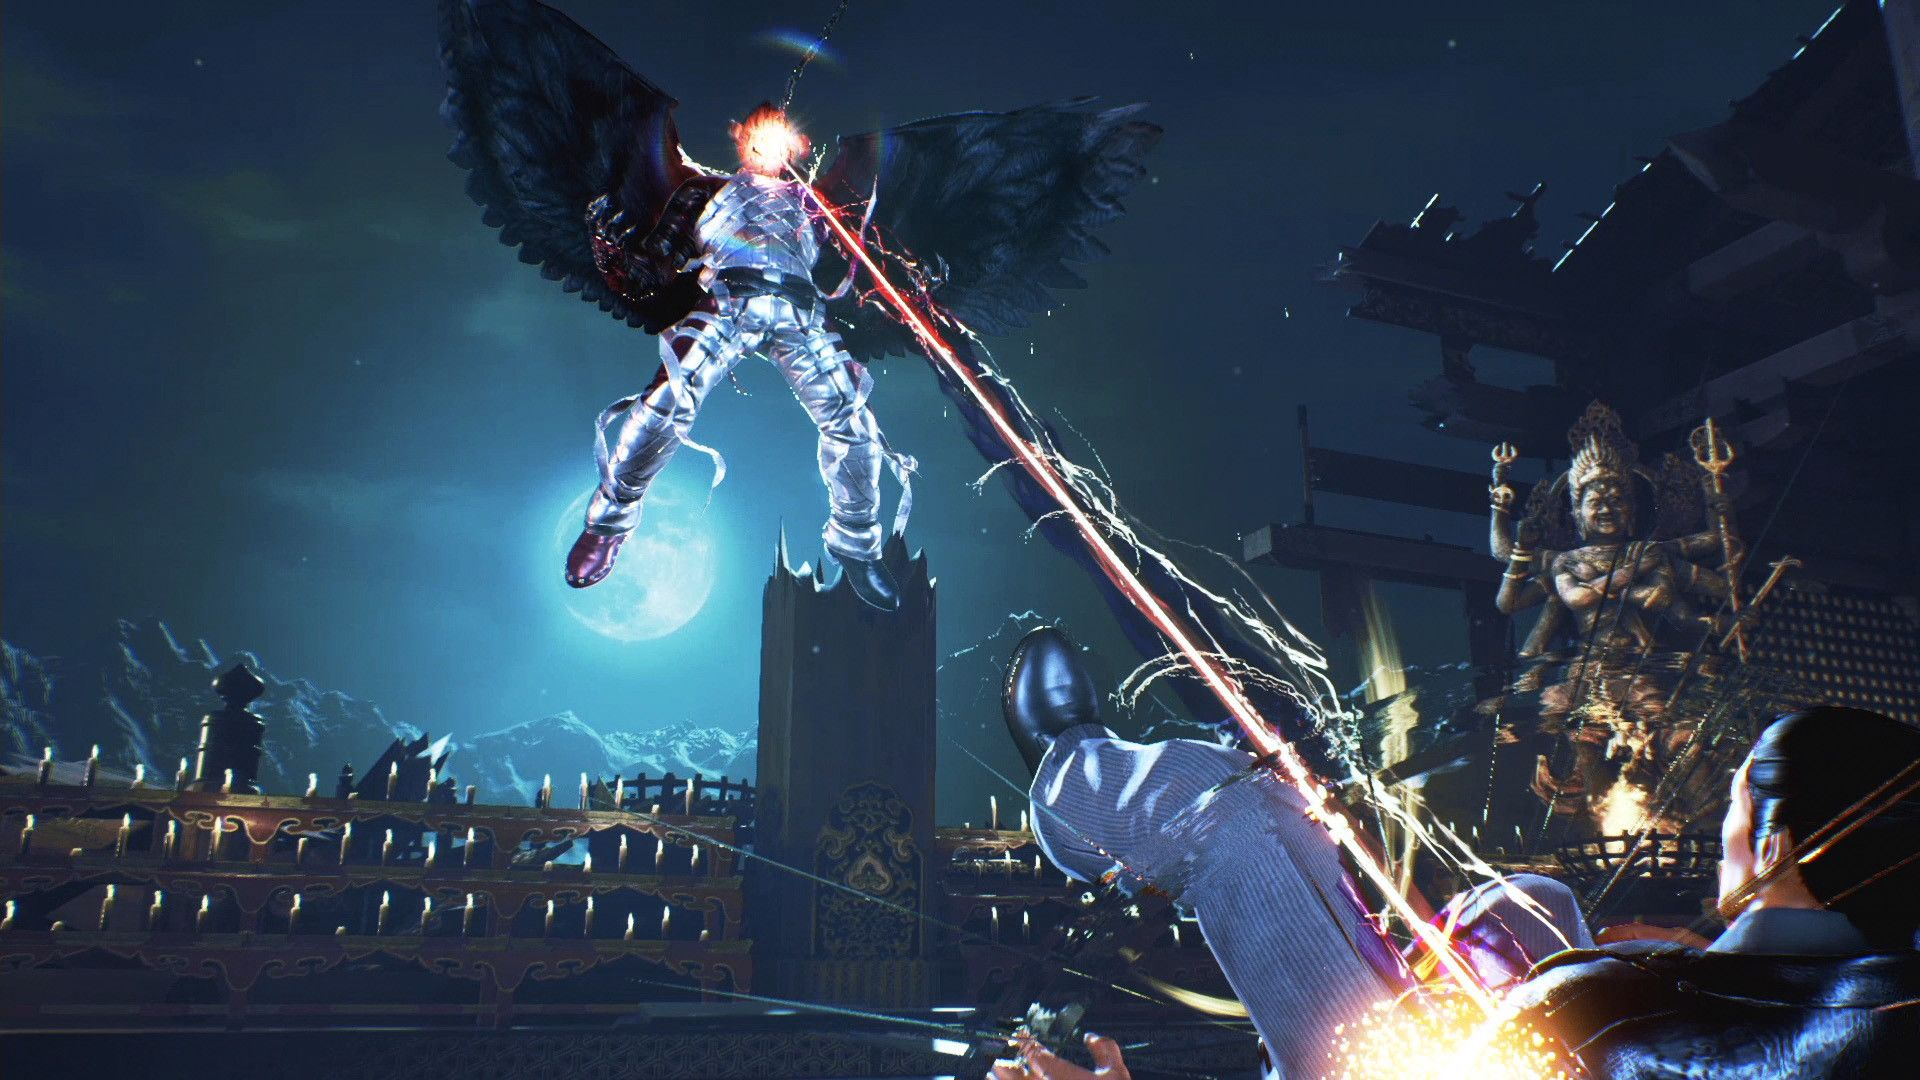 One of the Mishimas levitating in the air with big angel wings, blasting another Mishima with eye lasers. I am unsure which Mishima in either case.